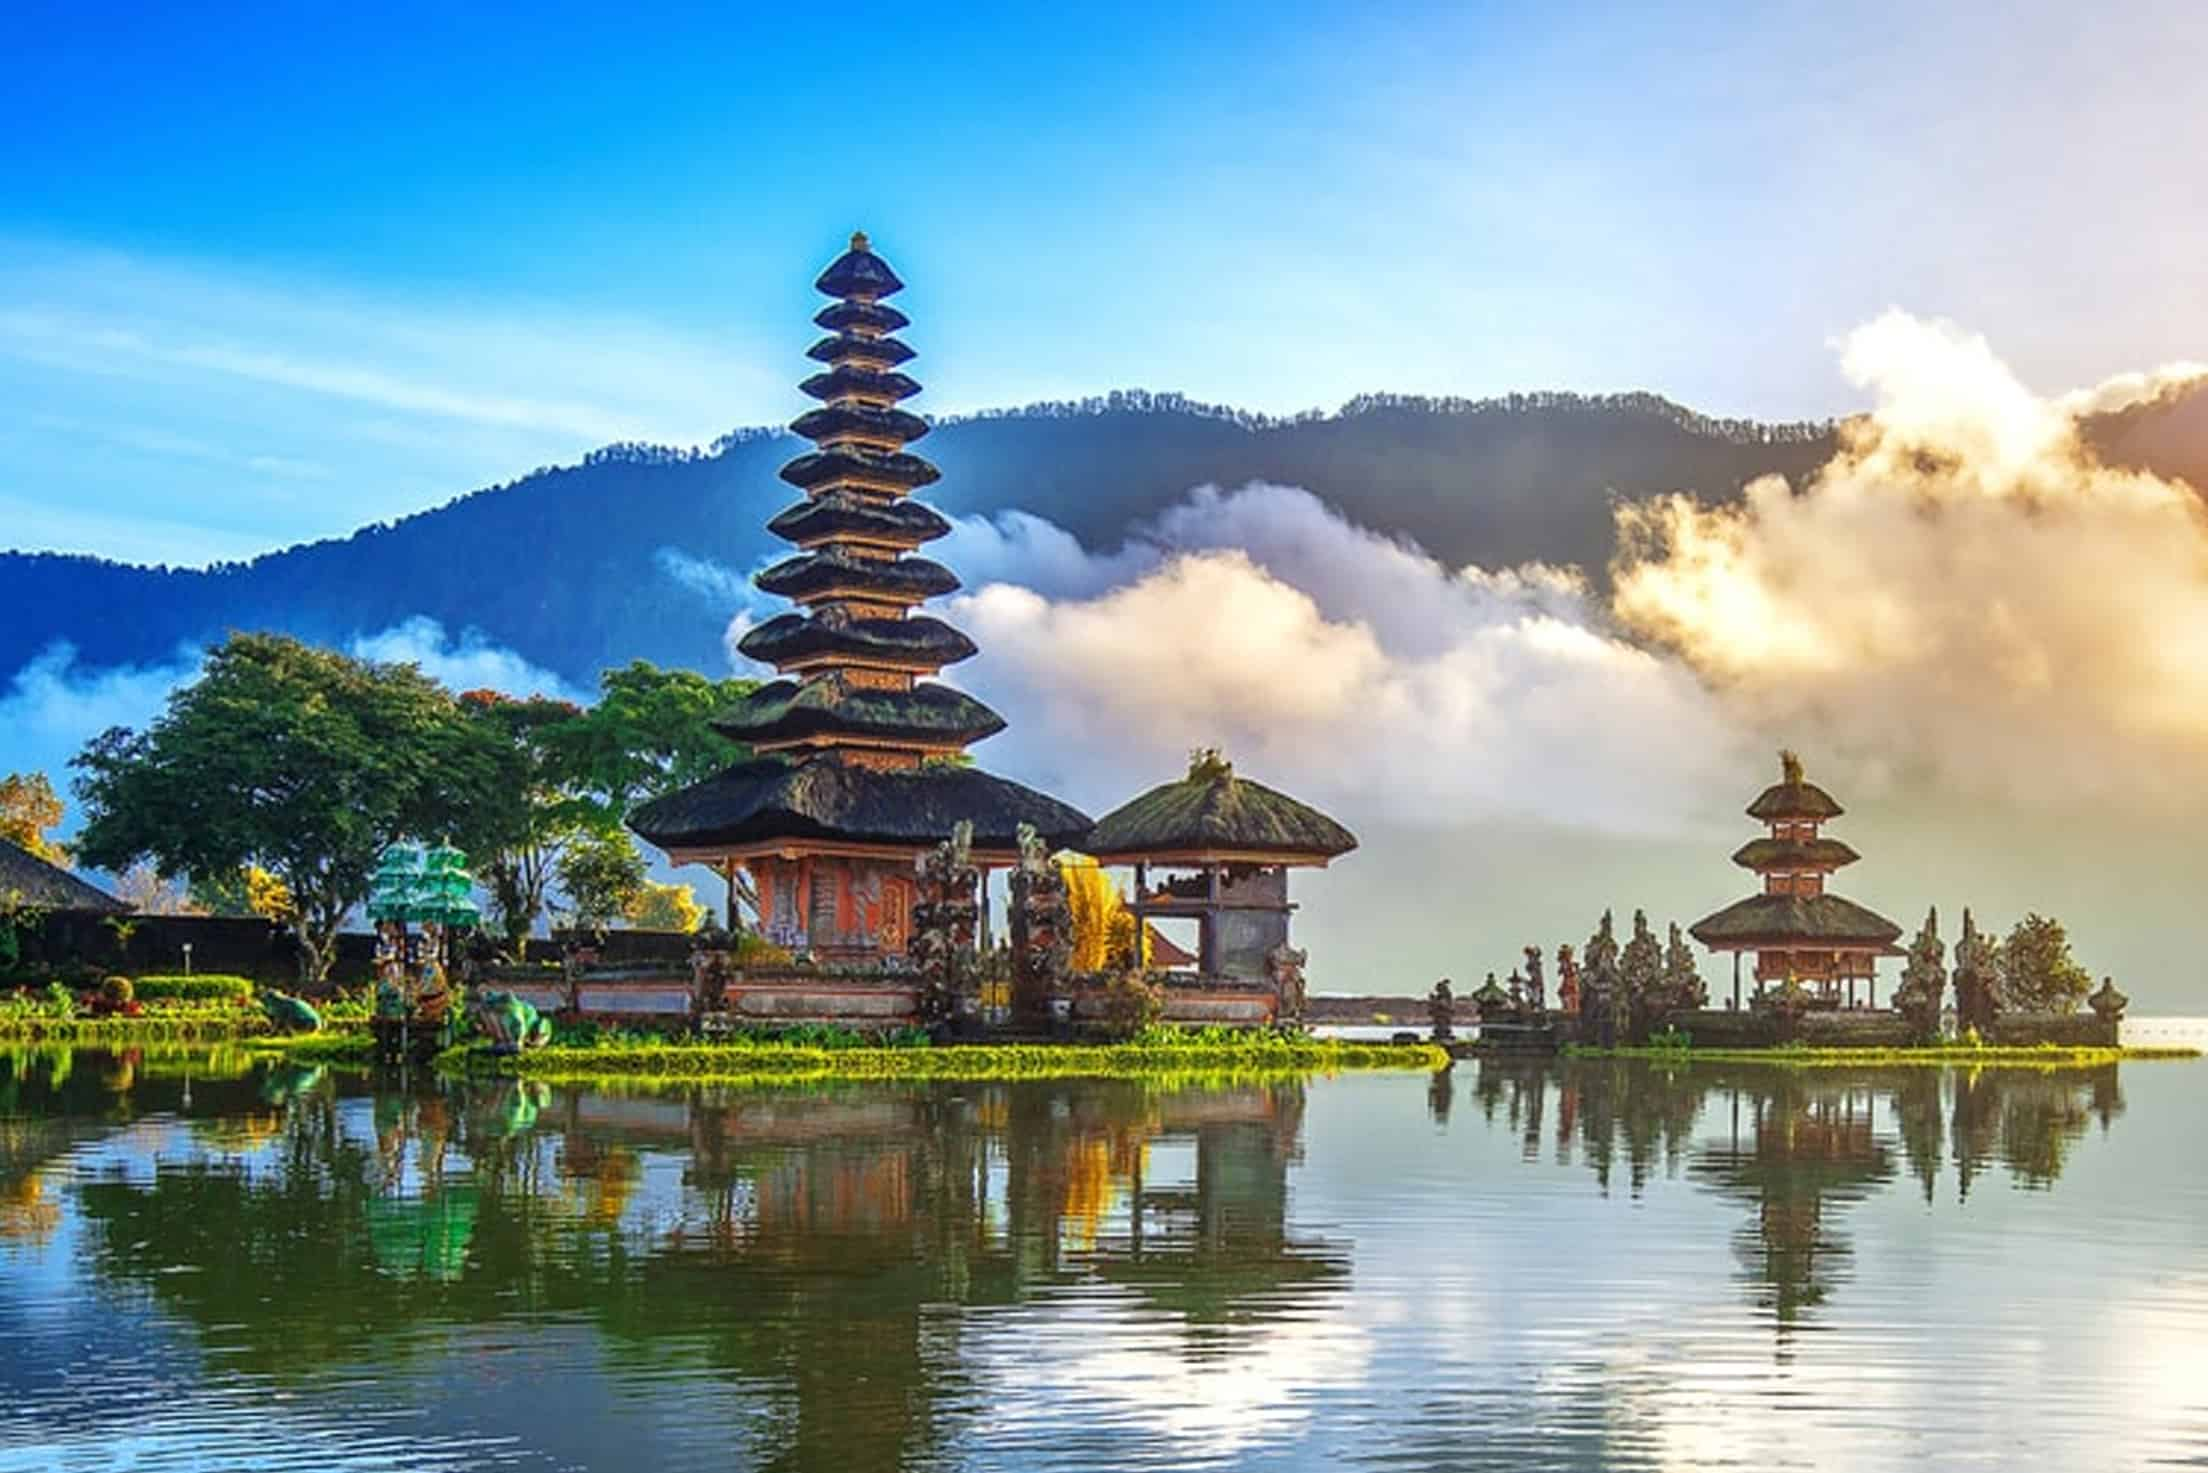 BALI WILL OPEN TO FOREIGN TOURIST ON SEPT 11, 2020